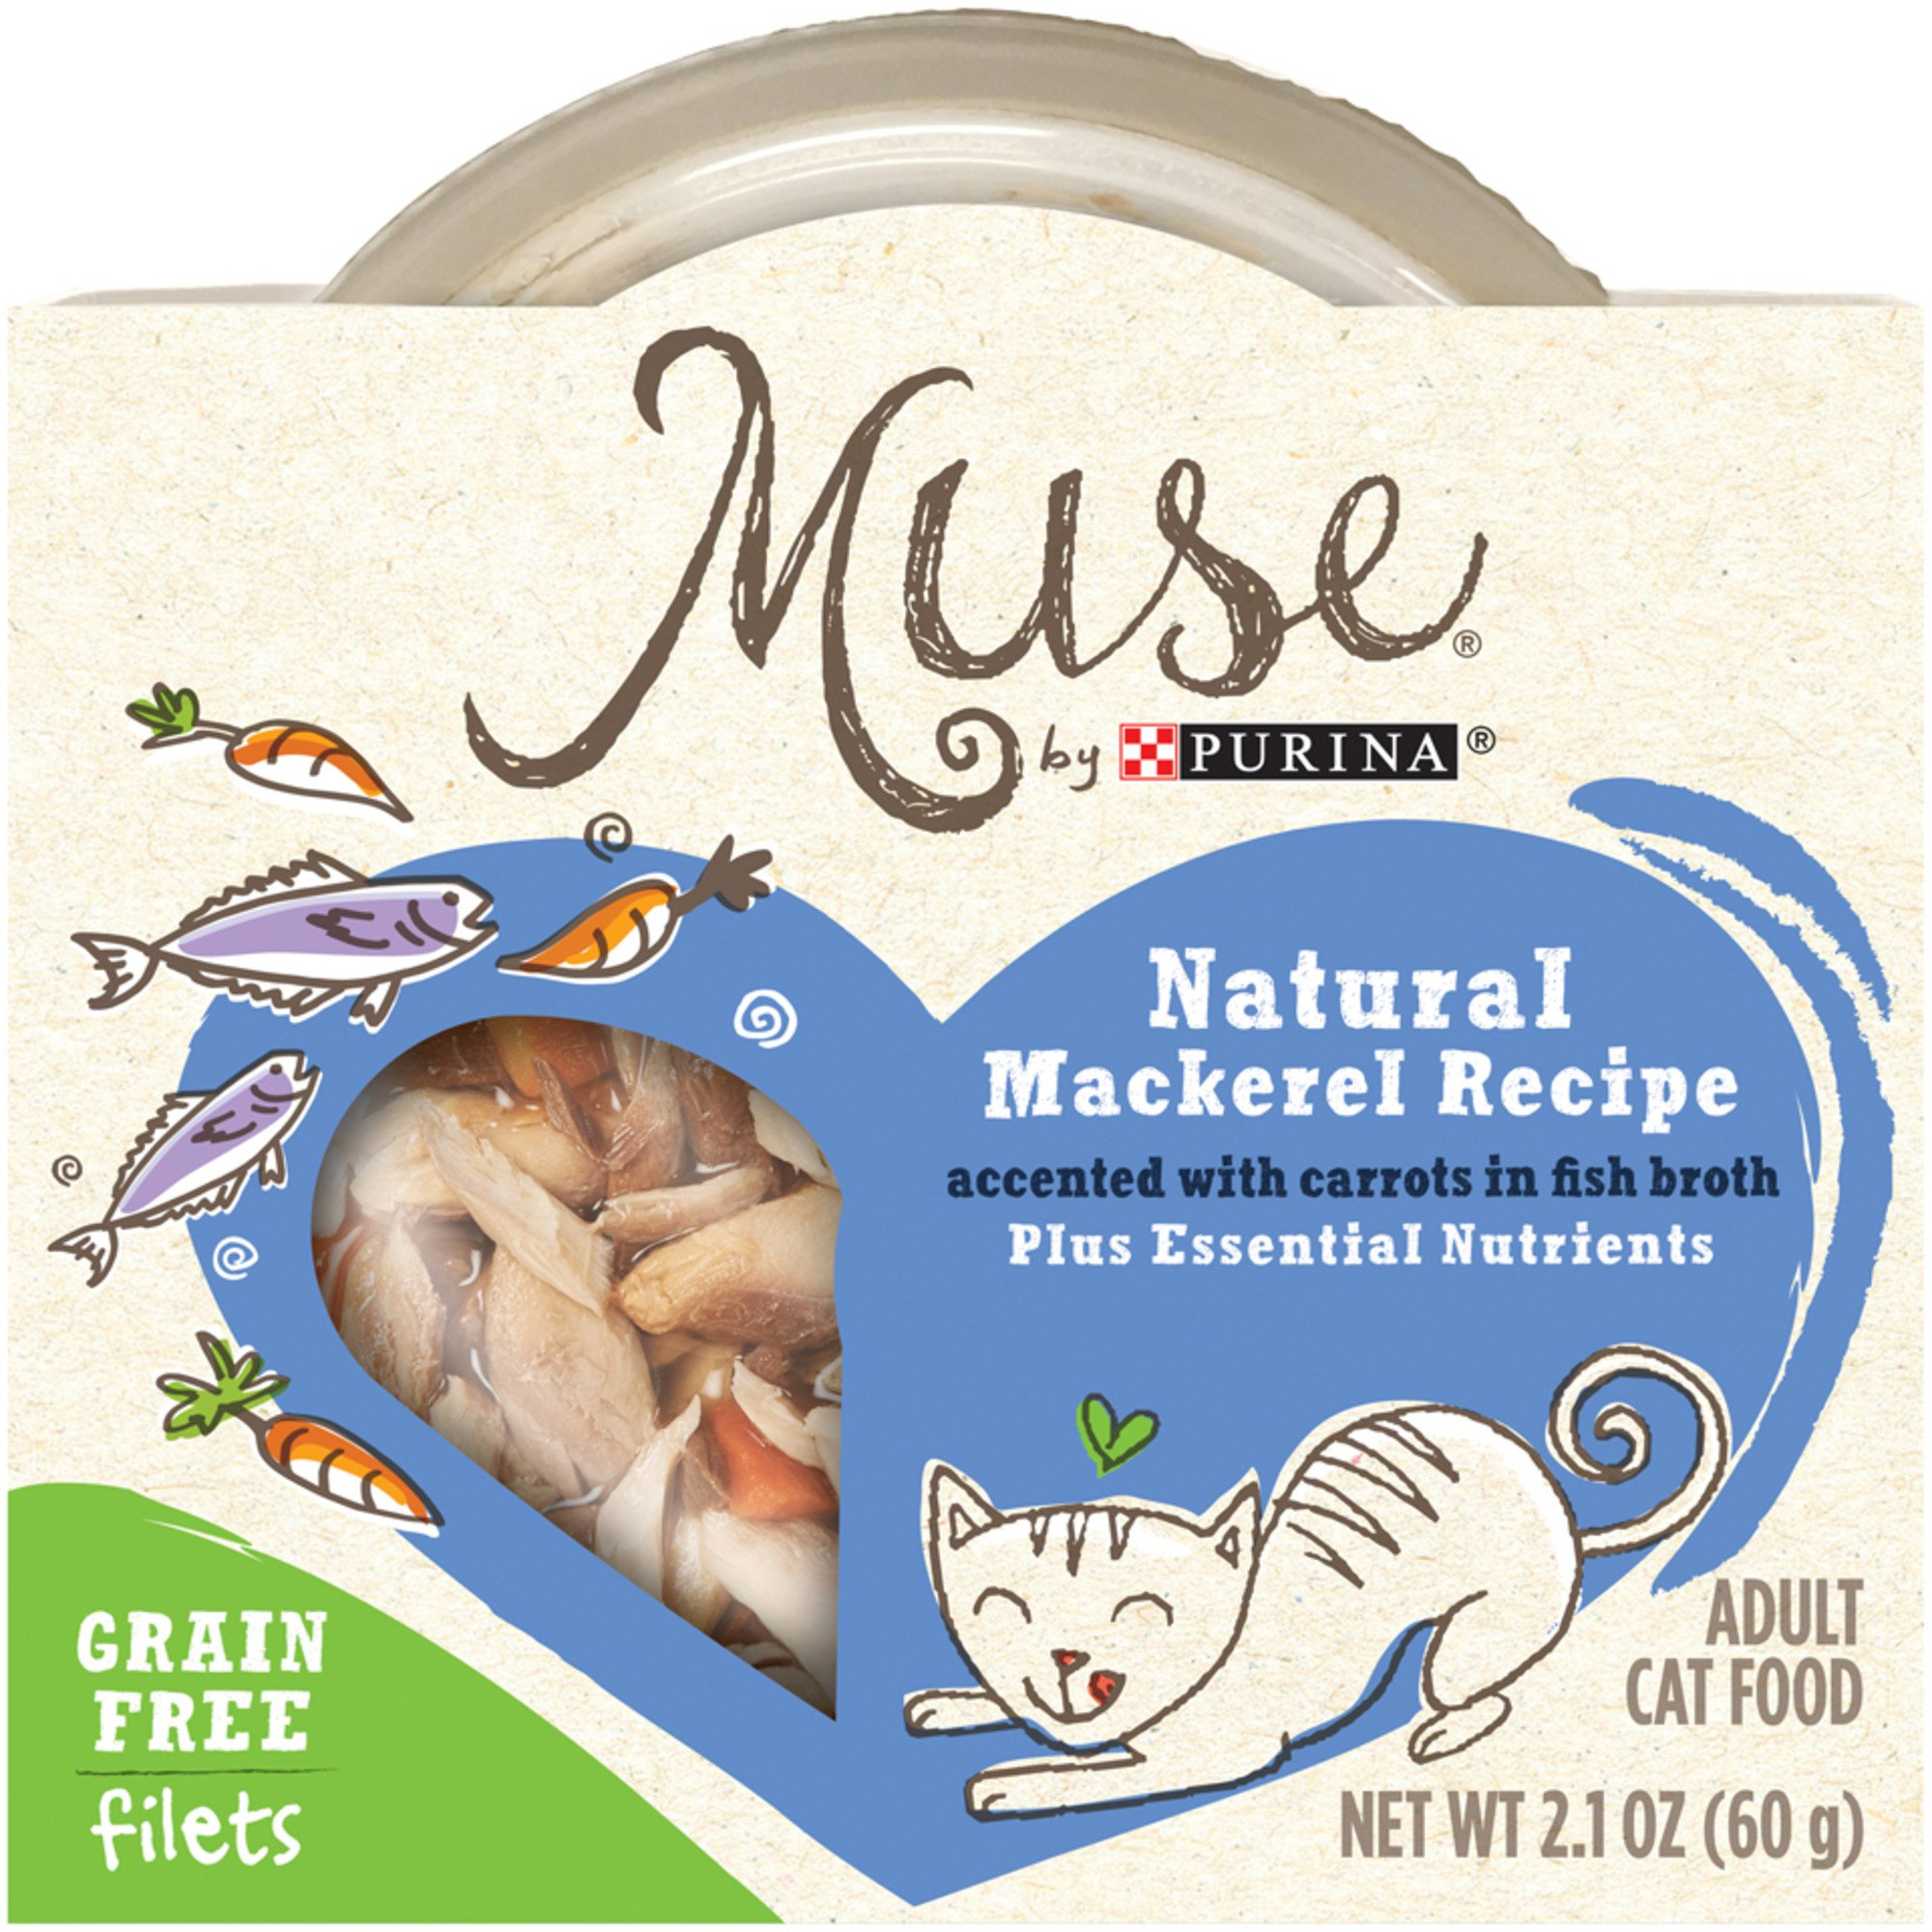 Muse by Purina Natural Mackerel Recipe Accented with Carrots In Fish Broth Cat Food